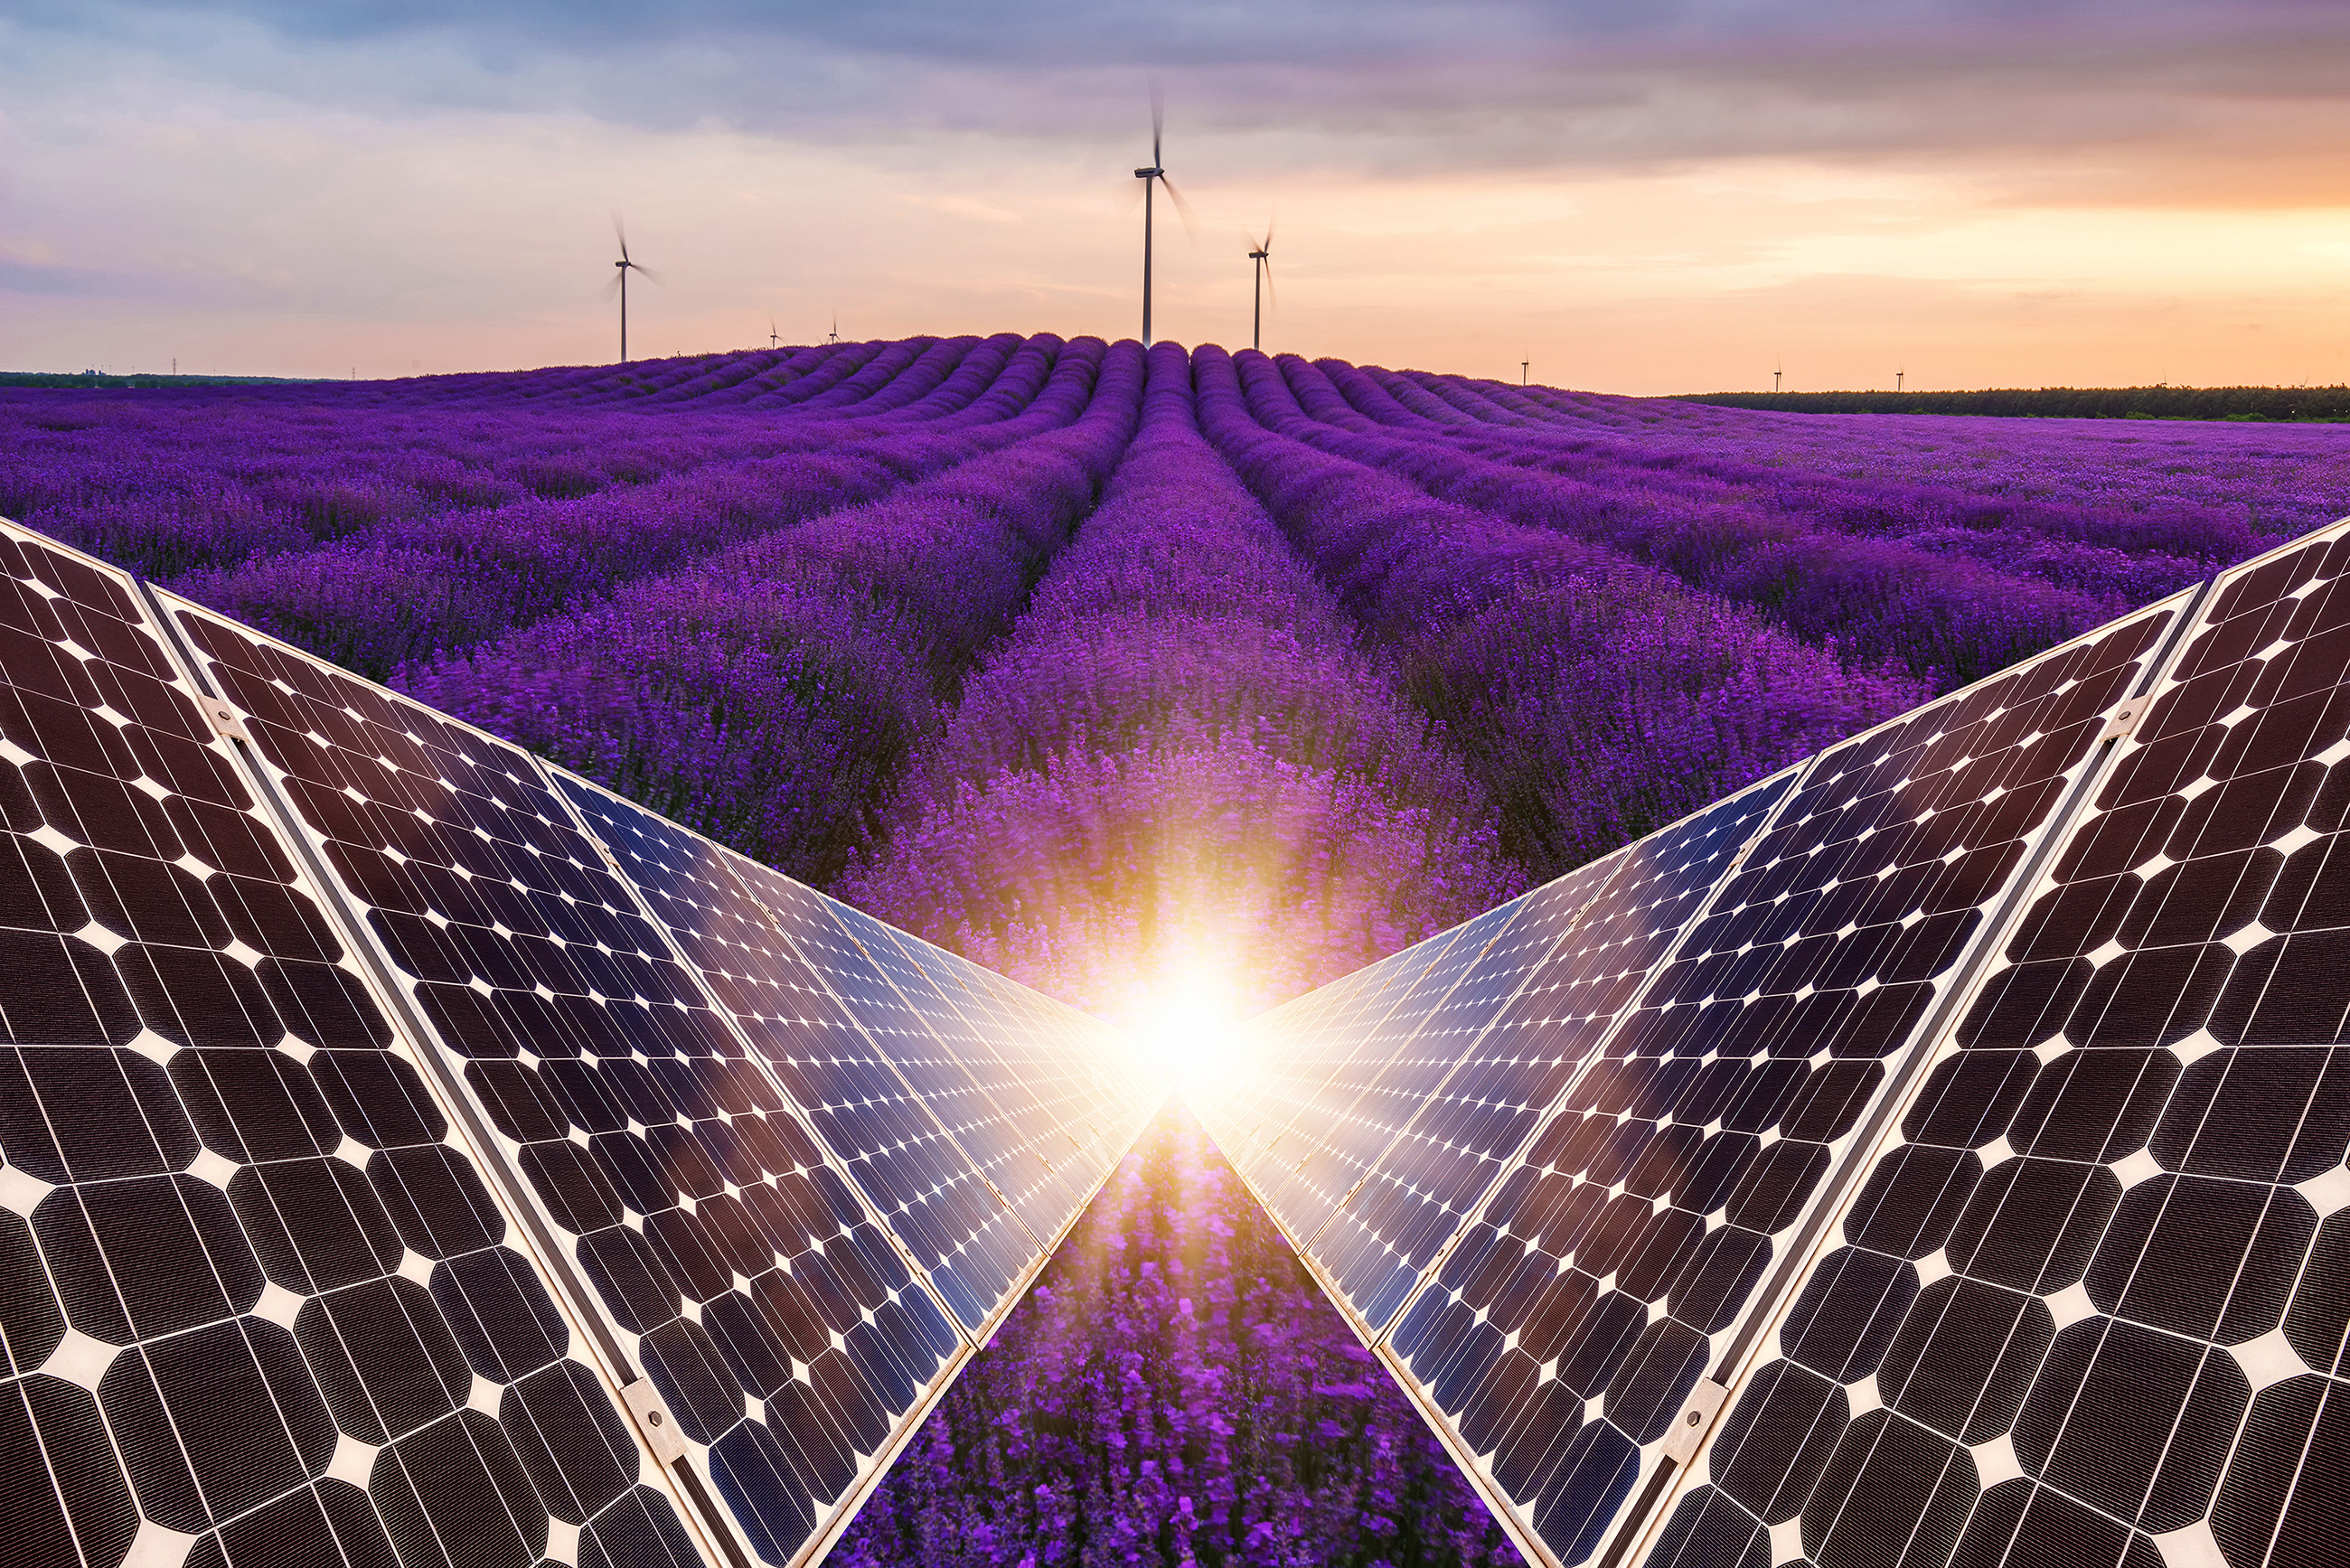 Lavender field with solar panels 54375